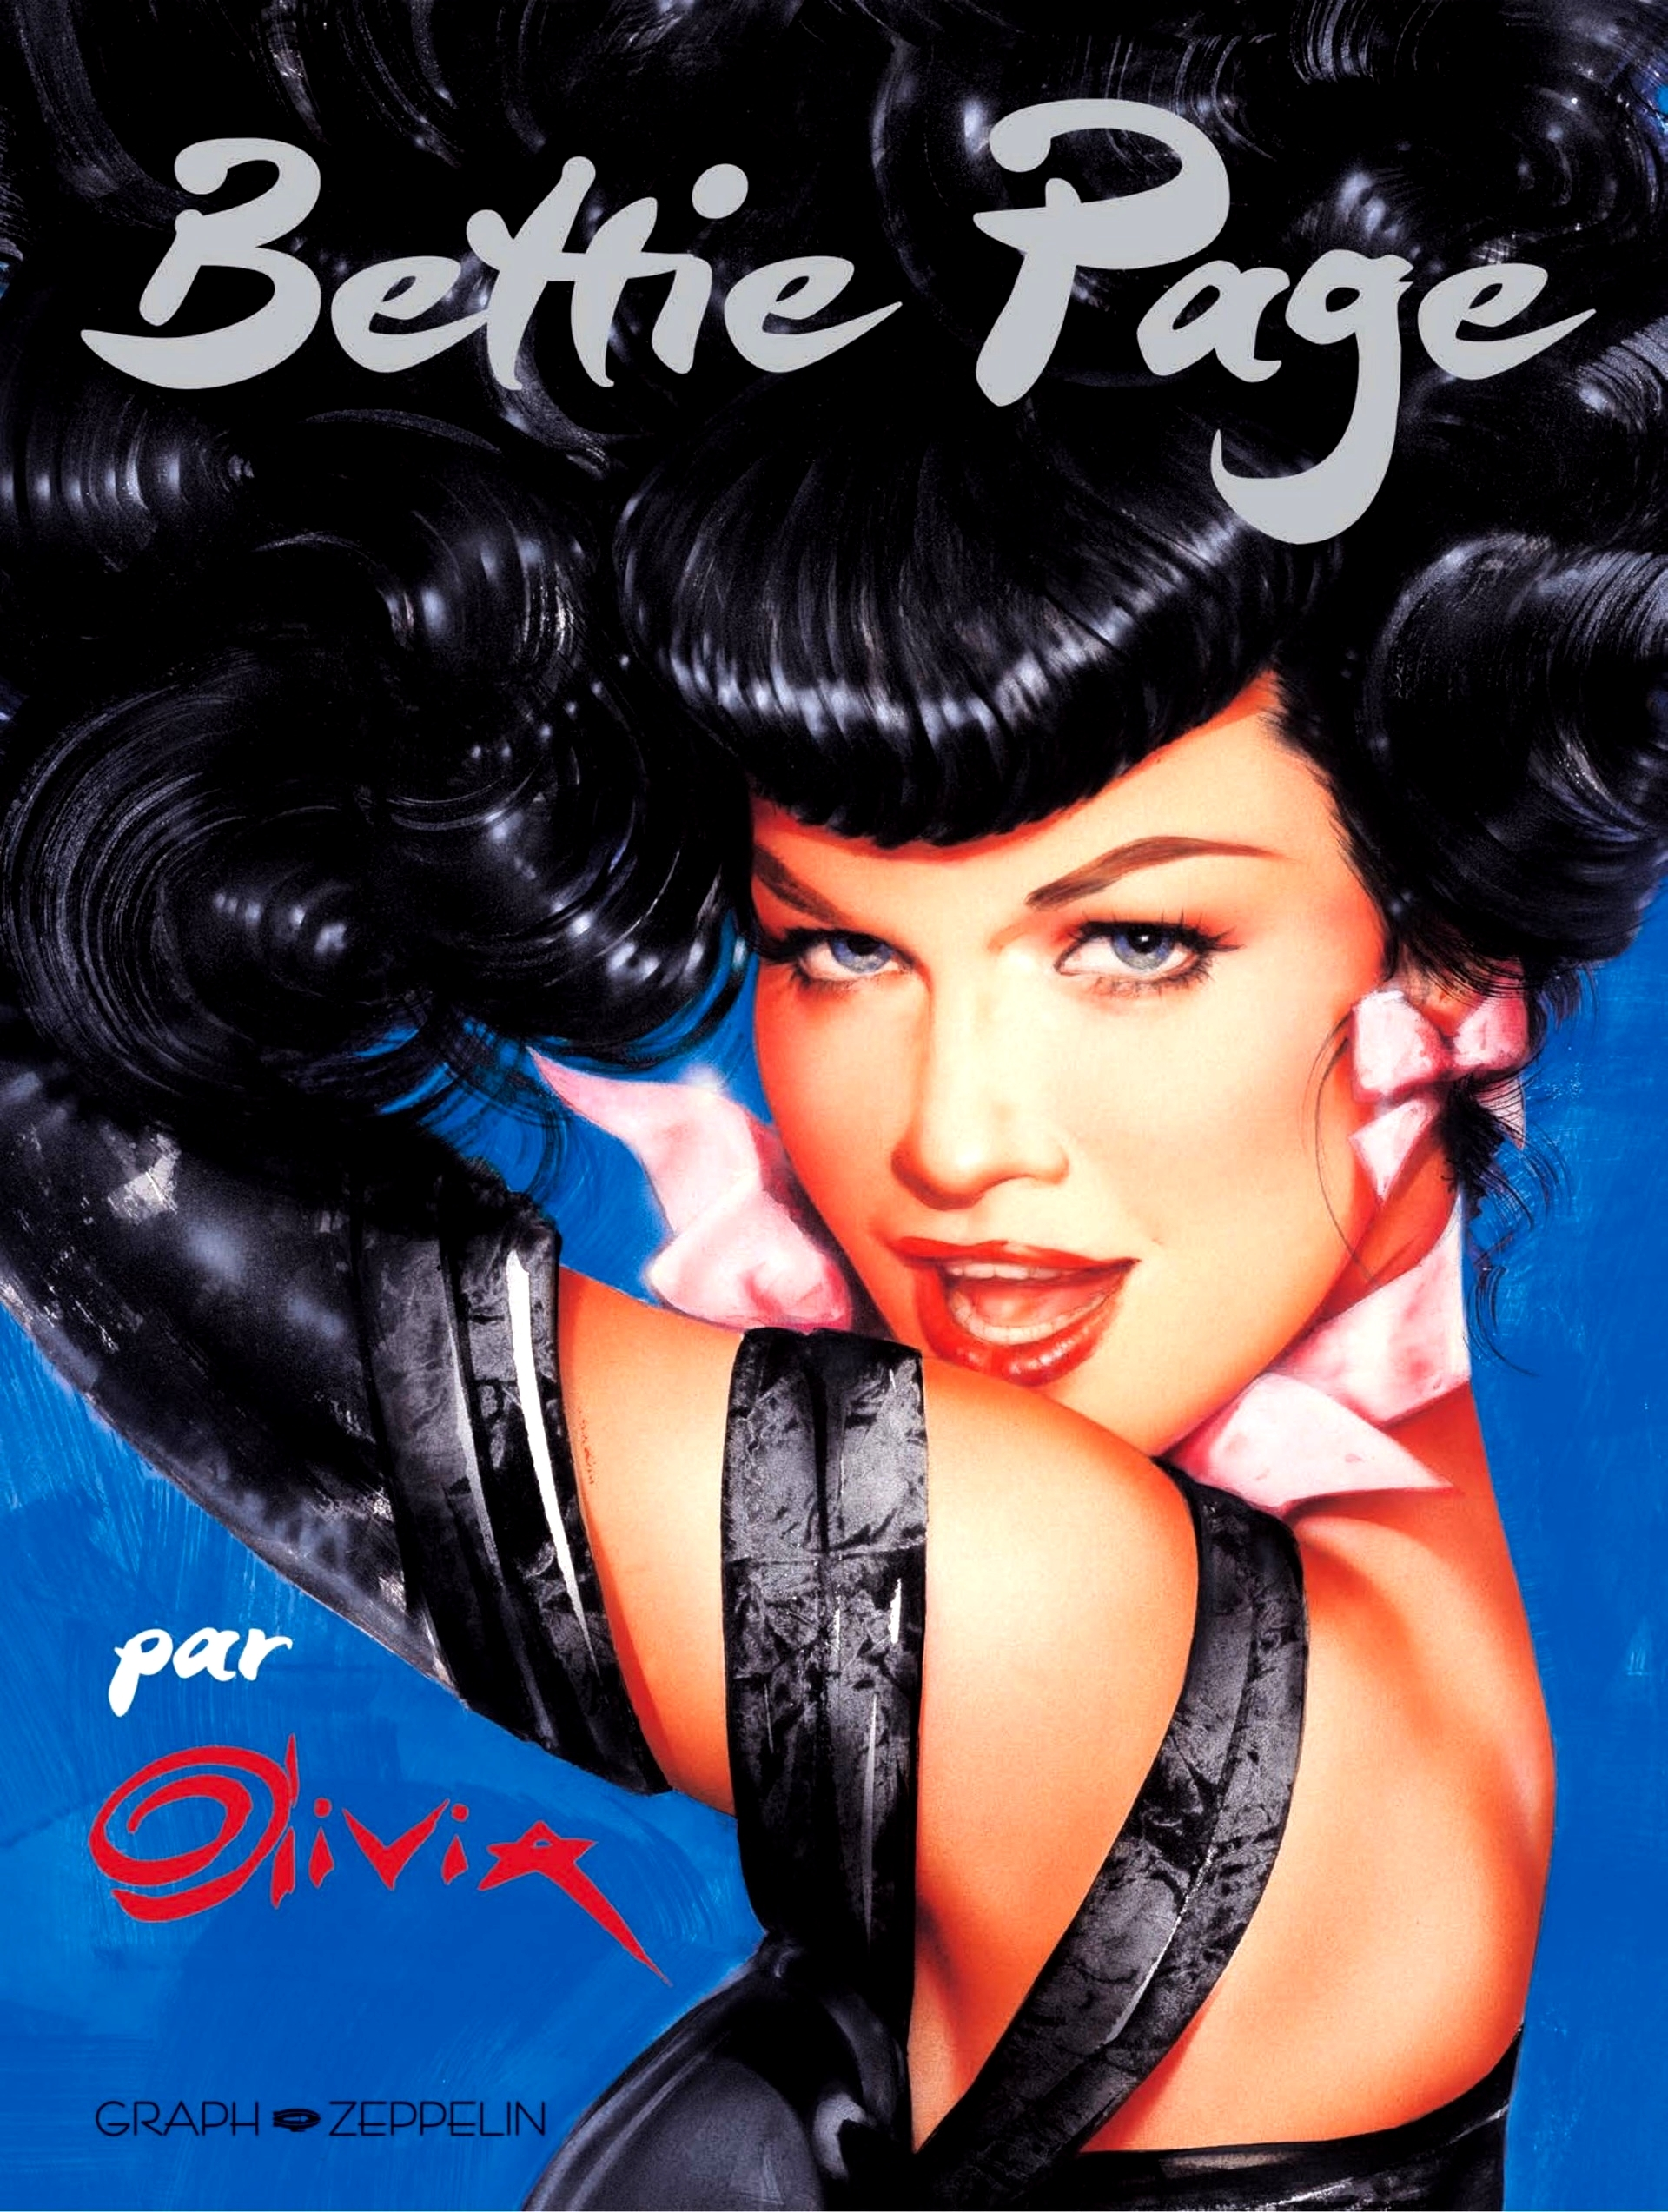 Bettie Page Hd ������ � ����� bettie page par olivia